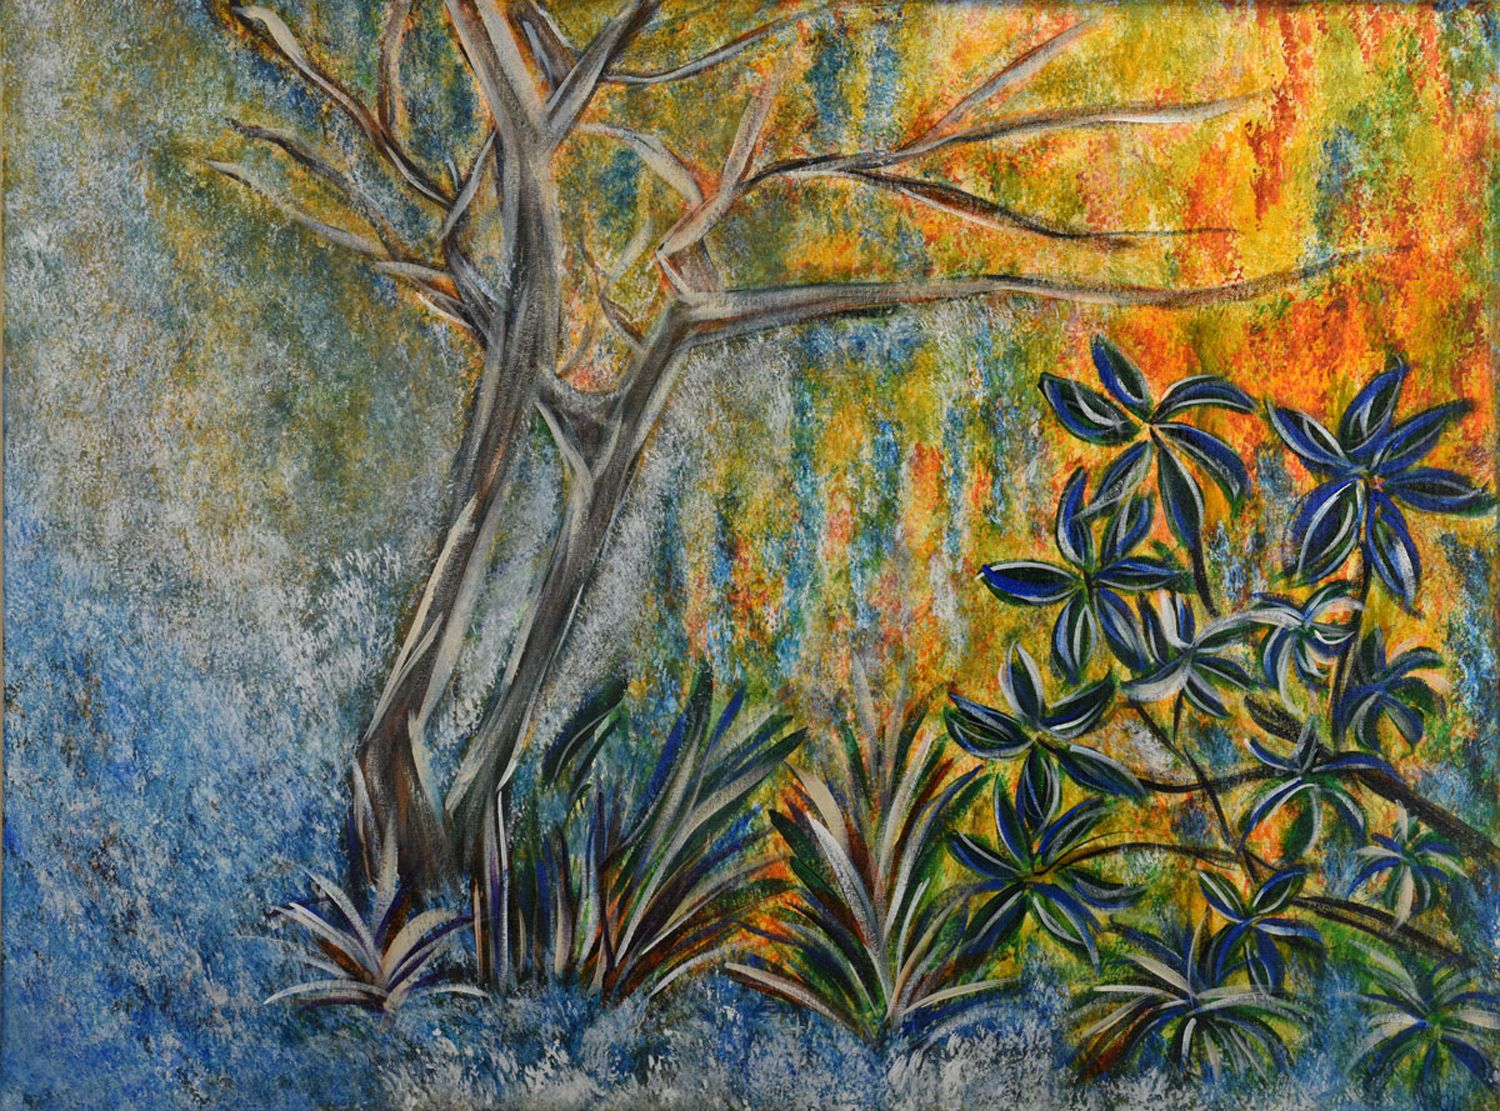 Wild_Forest_painting_by_Vibha_Nanda-compressor